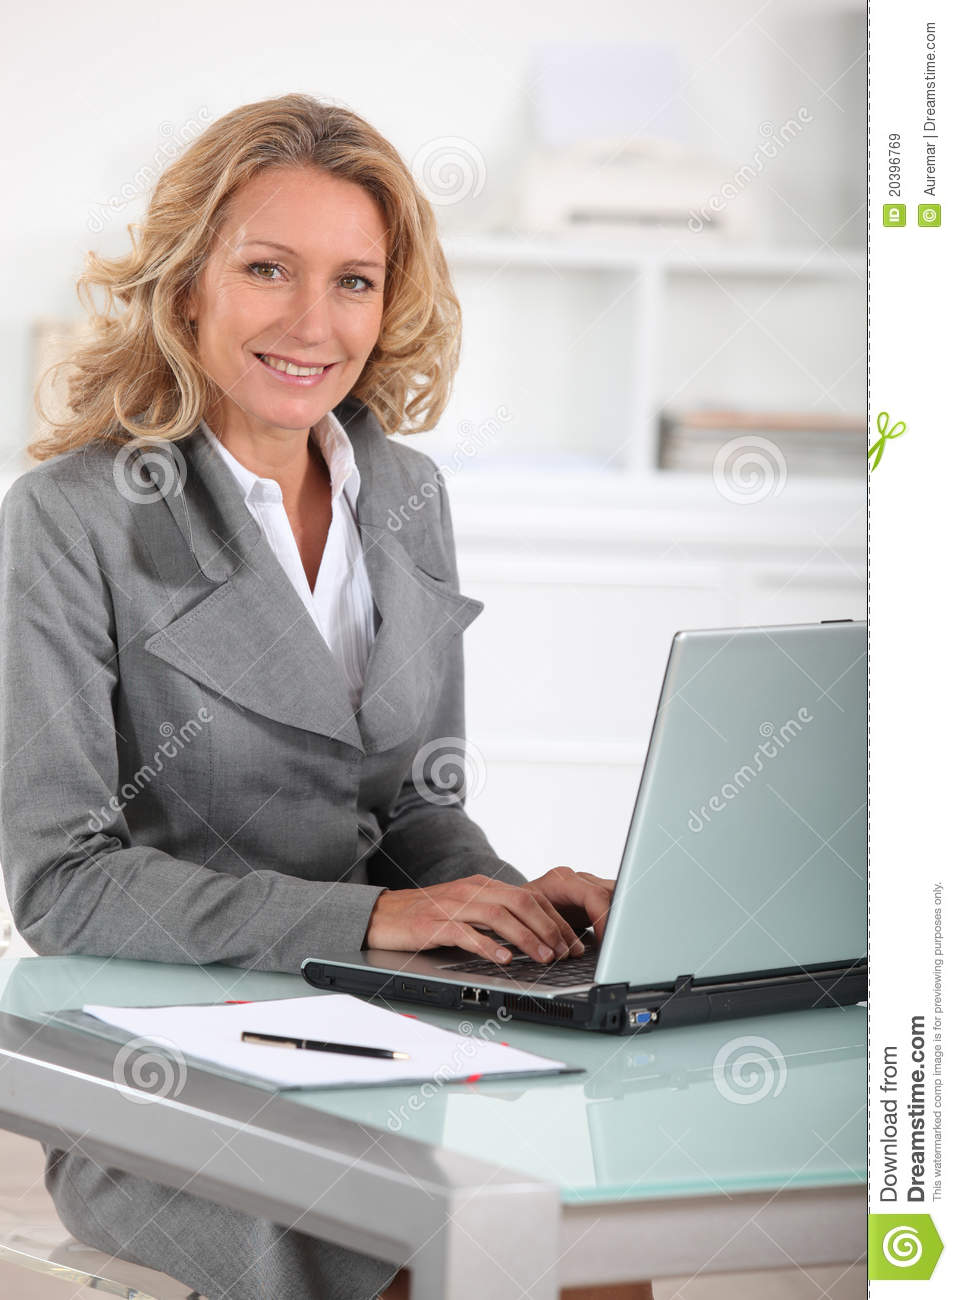 Happy Female Executive At Her Desk Stock Image  Image of